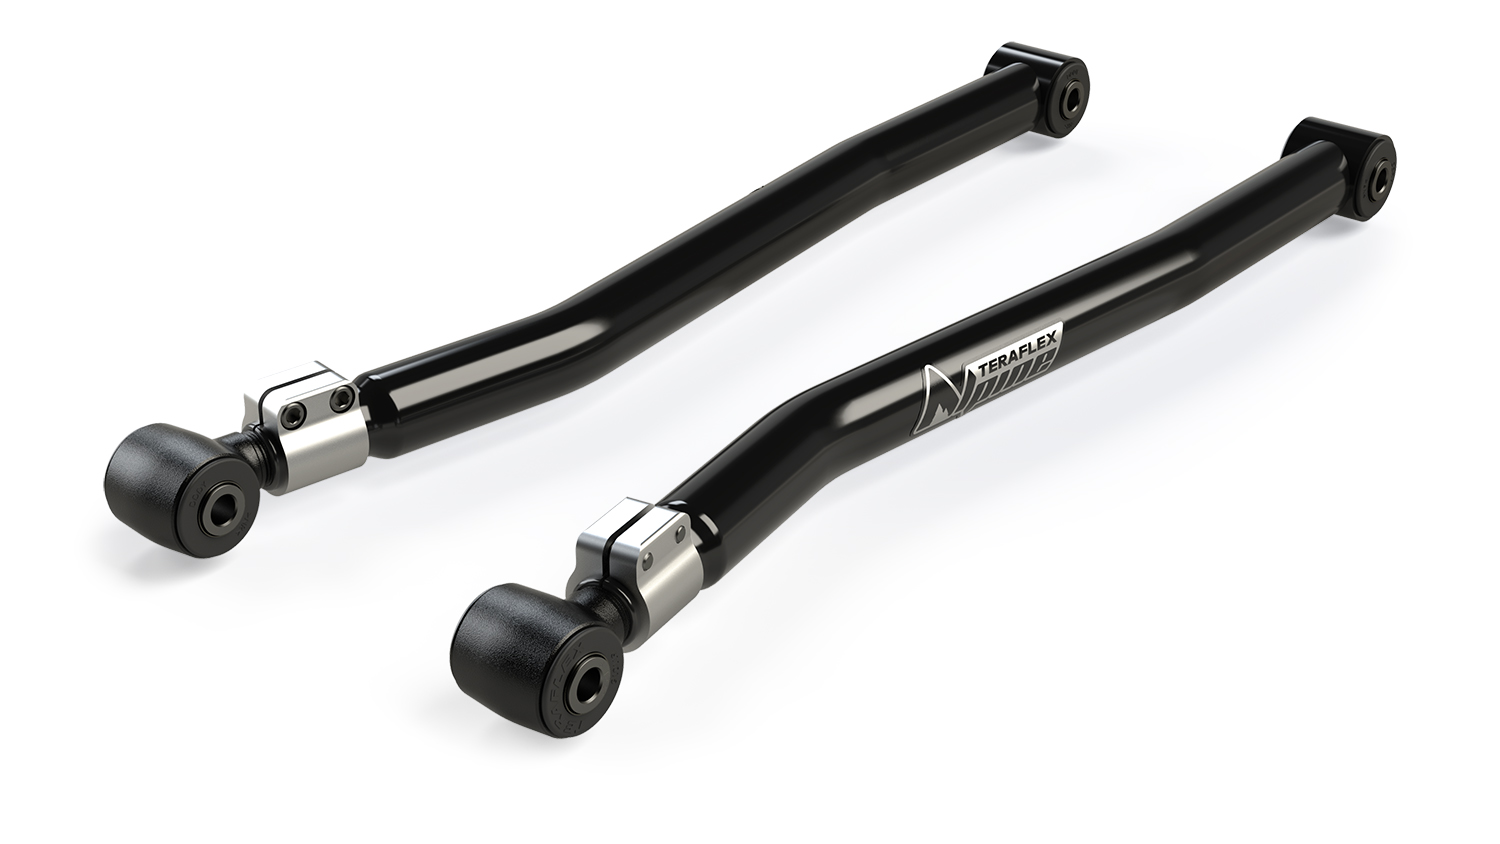 Teraflex Alpine Long Arms - Front Lower, Adjustable, 3in-6in Lift - JL